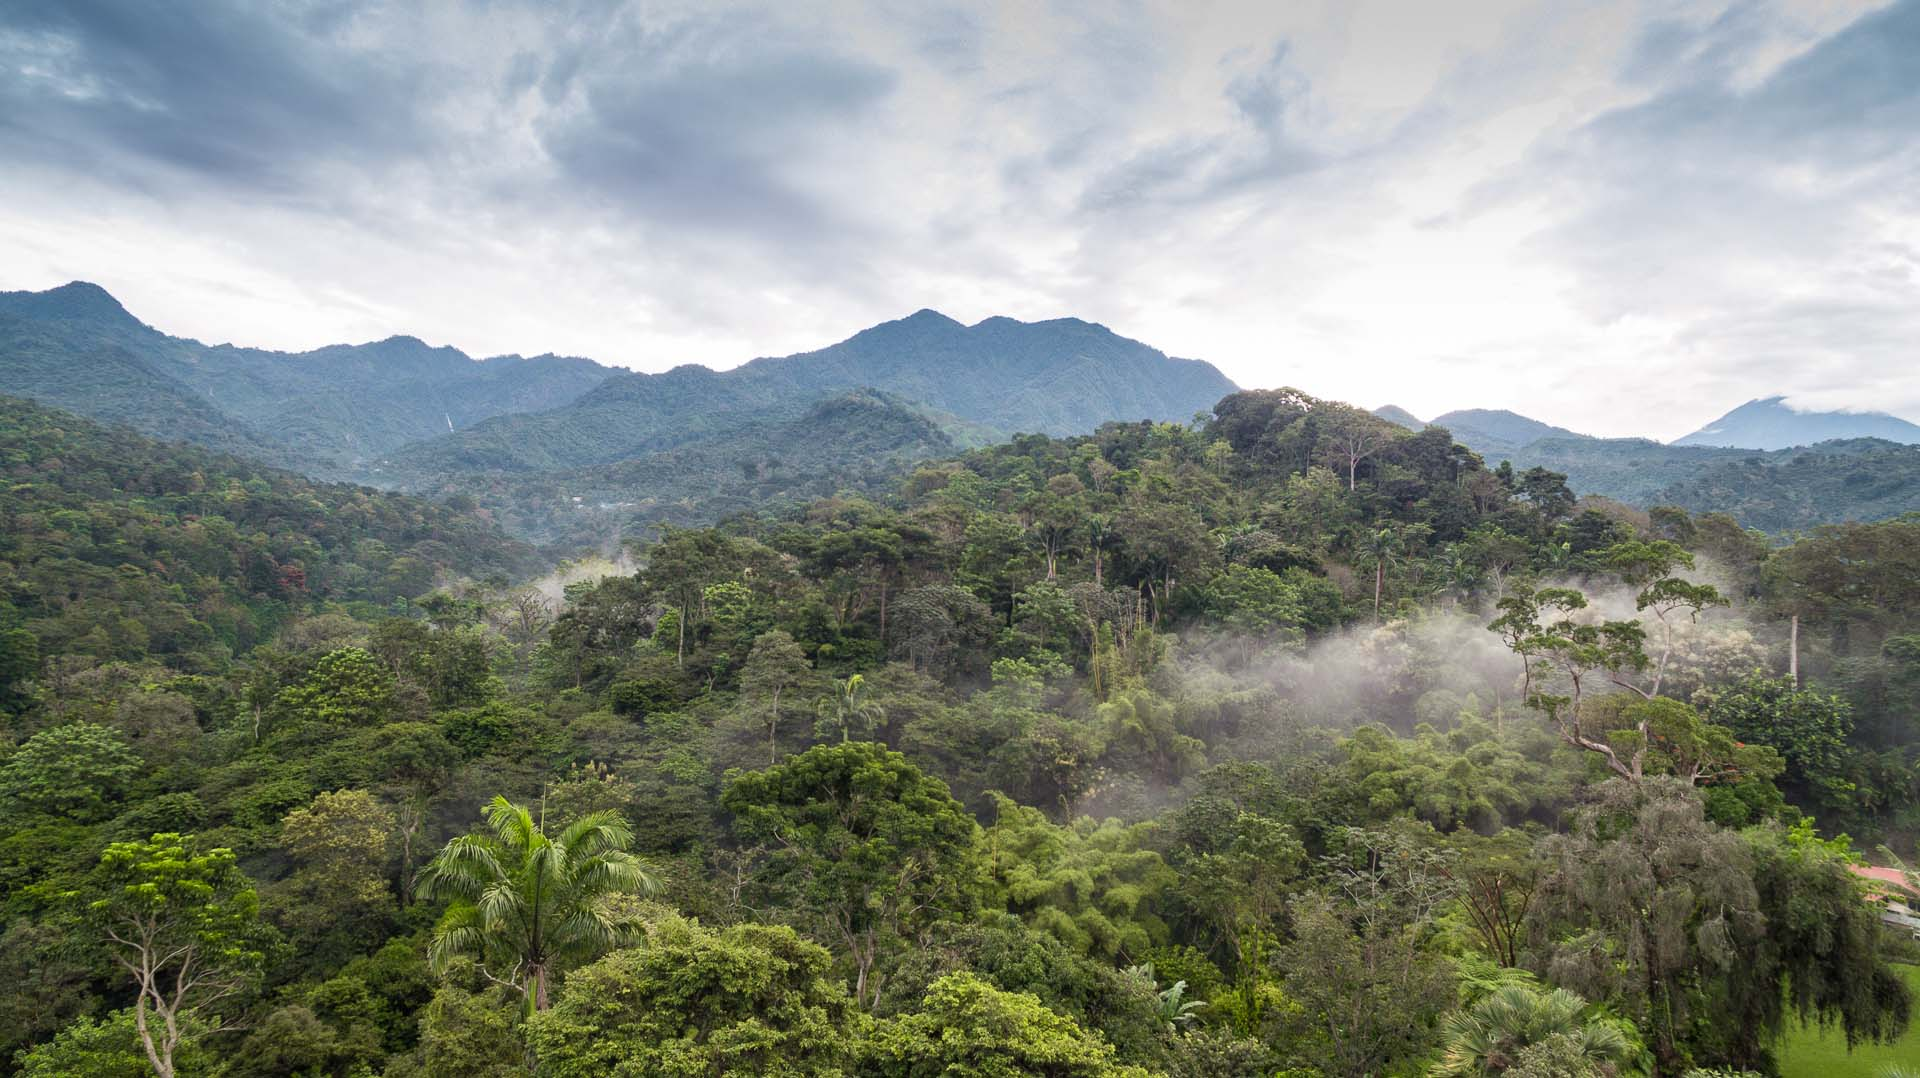 Flying over the dense jungle with my drone was exhilarating!